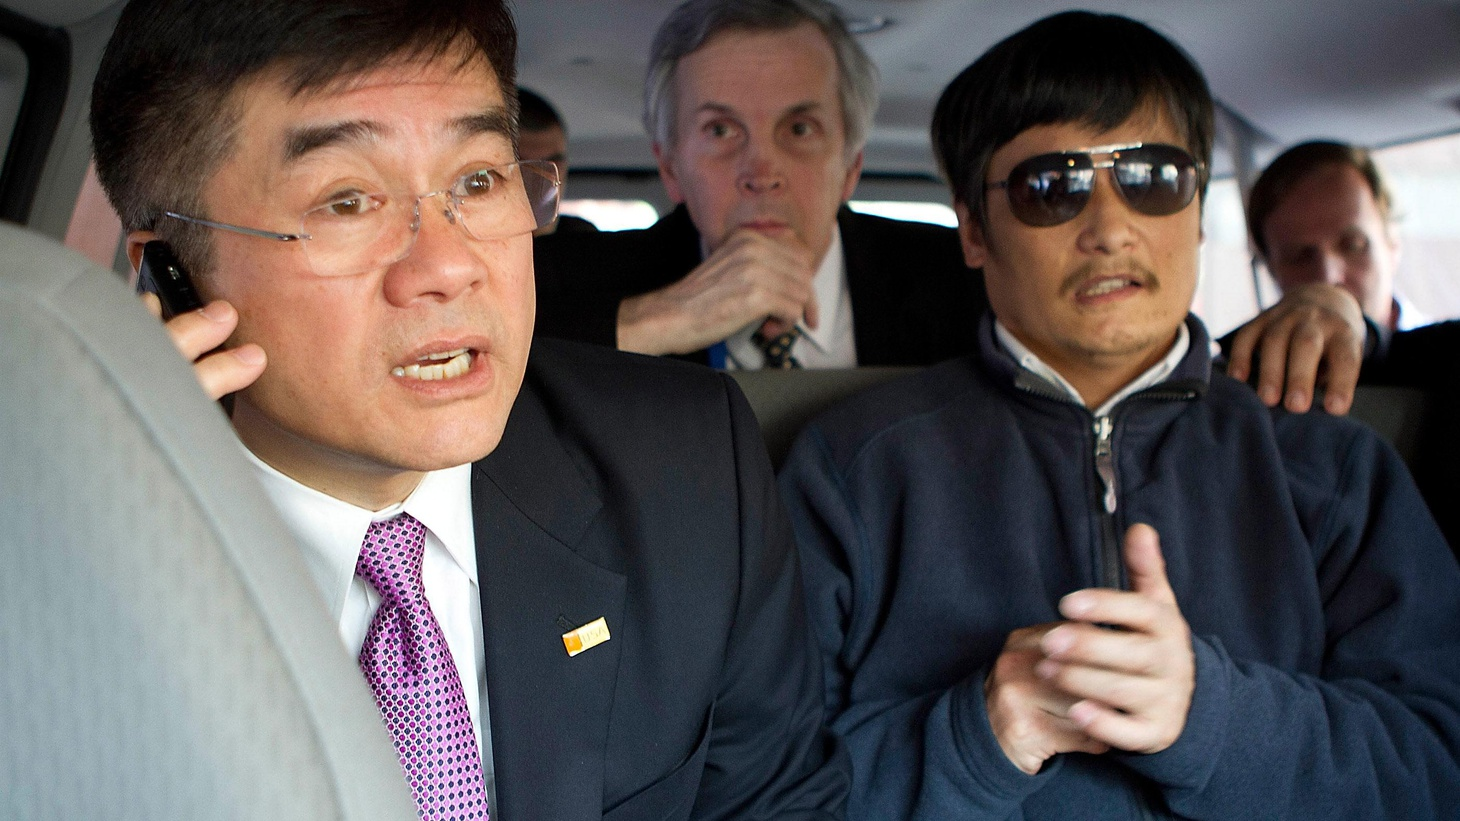 Chen Guangcheng has been offered a fellowship in the US. How are the Chinese government and Obama Administration managing an historically awkward moment?